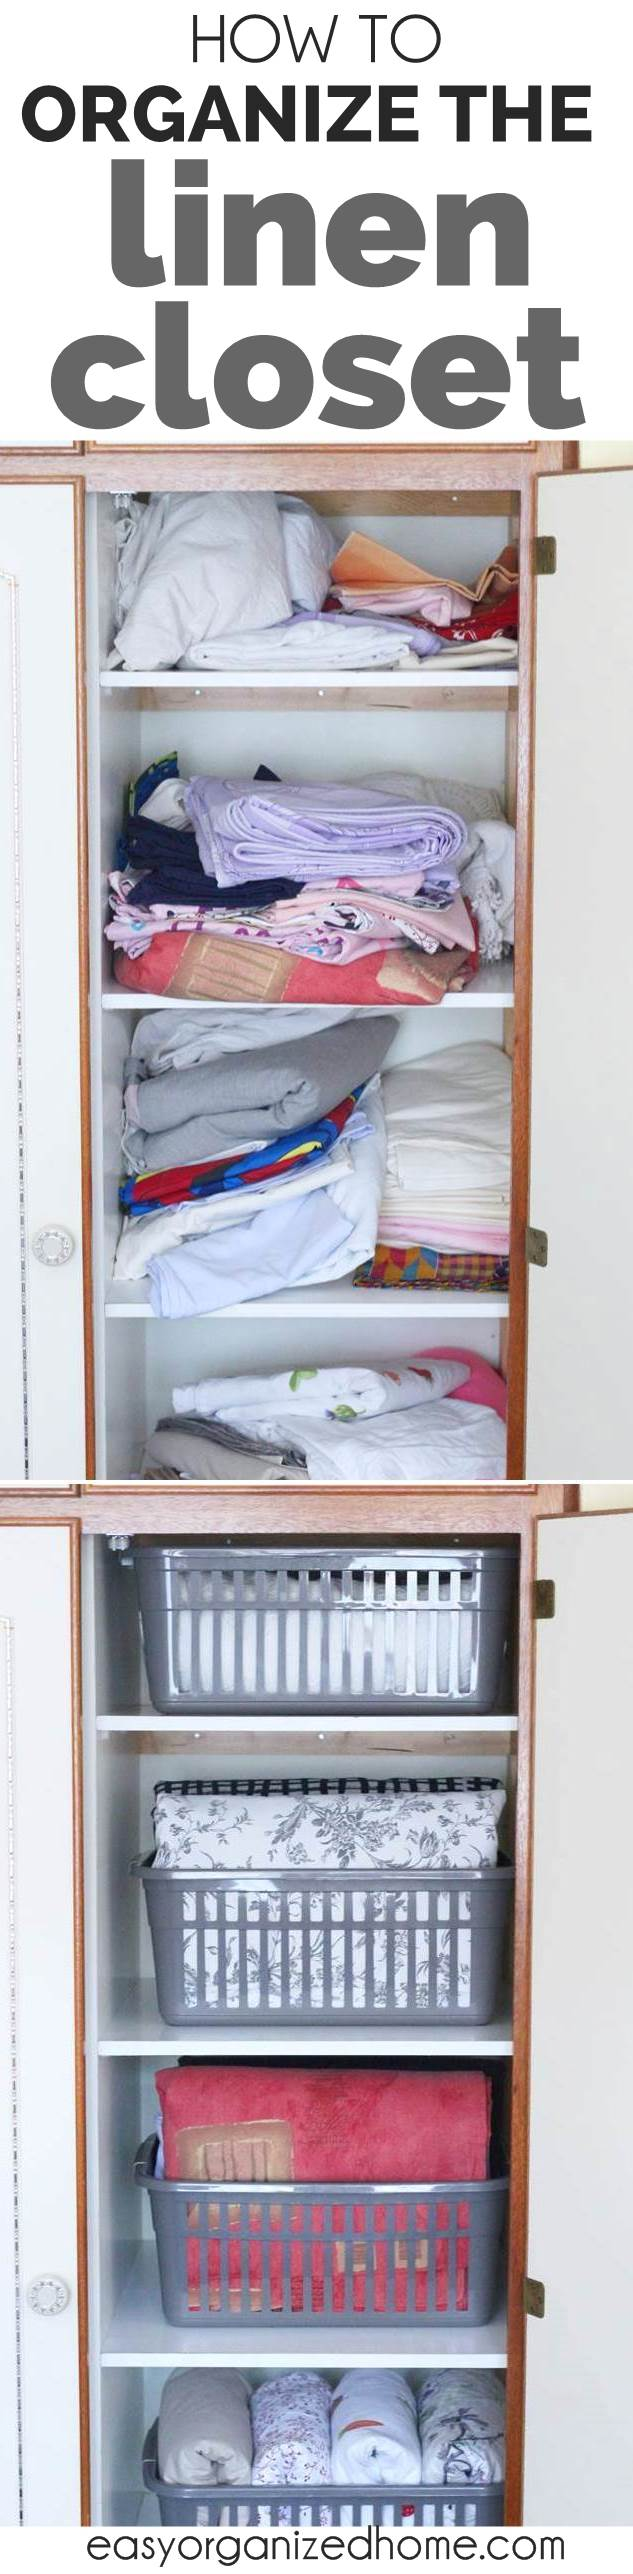 How to organize a linen closet. Check out our before and after photos of linen closet organization for small spaces and DIY makeover on a budget with dollar store ideas #declutter #decluttering #declutteryourhome #declutteringtips #declutteringahouse #organization #organize #organizing #organizationideas